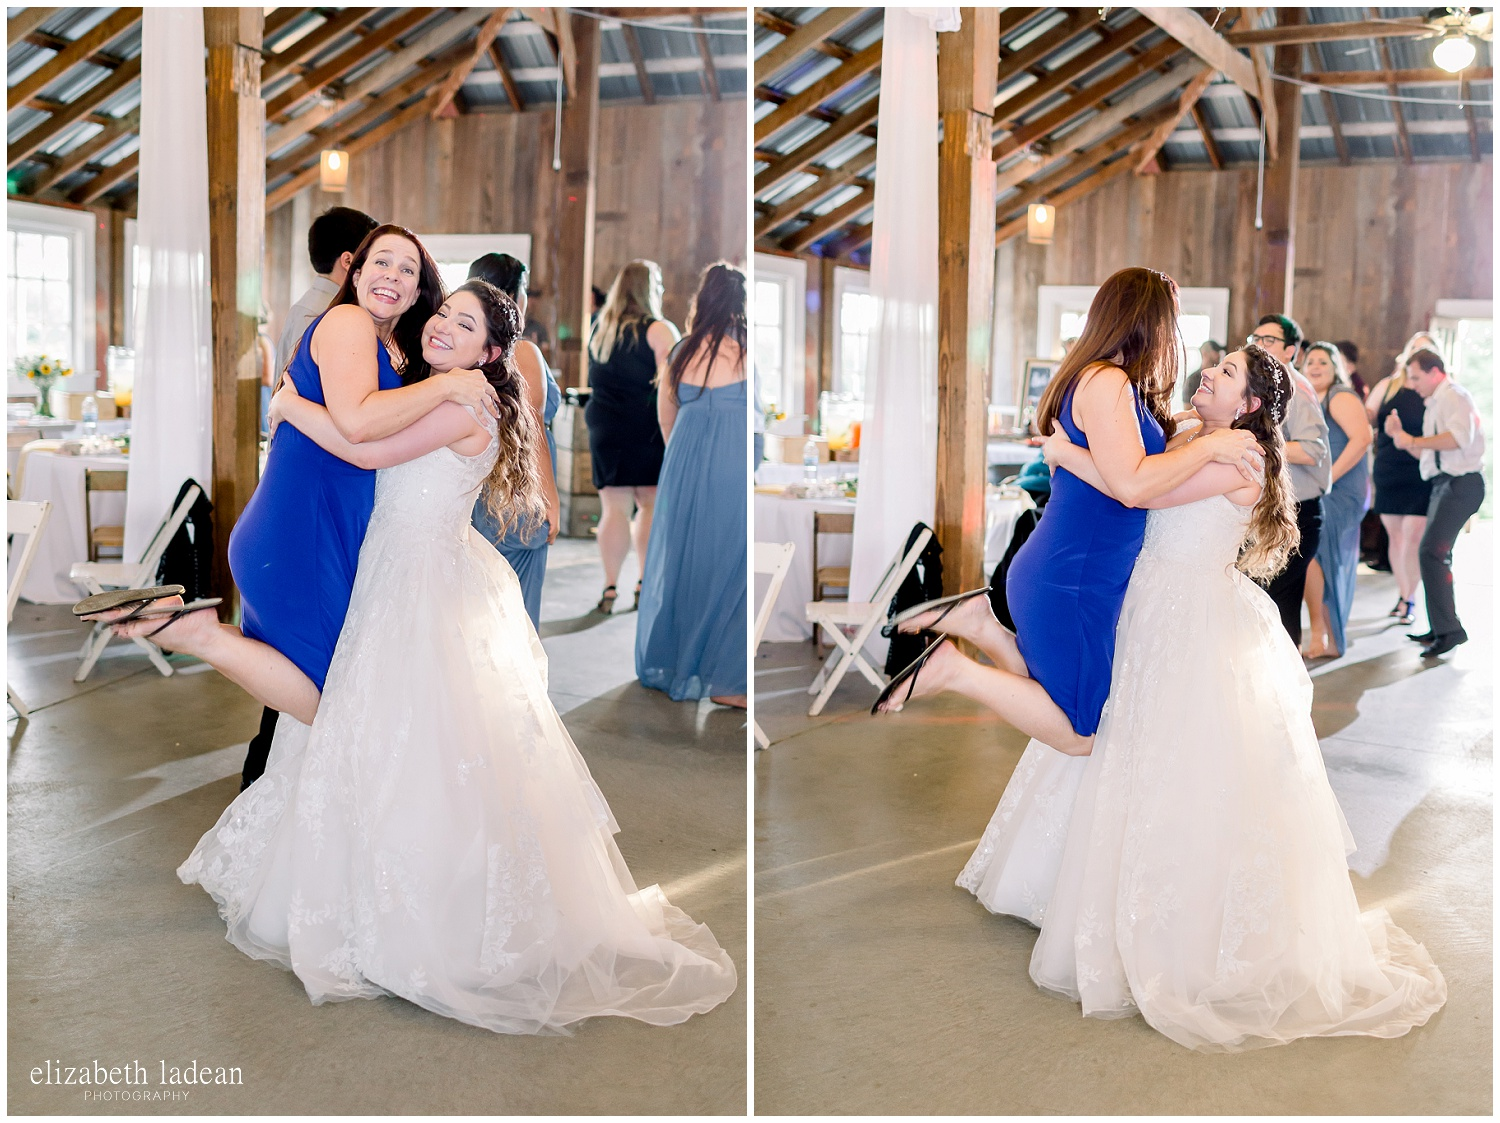 -behind-the-scenes-of-a-wedding-photographer-2018-elizabeth-ladean-photography-photo_3434.jpg